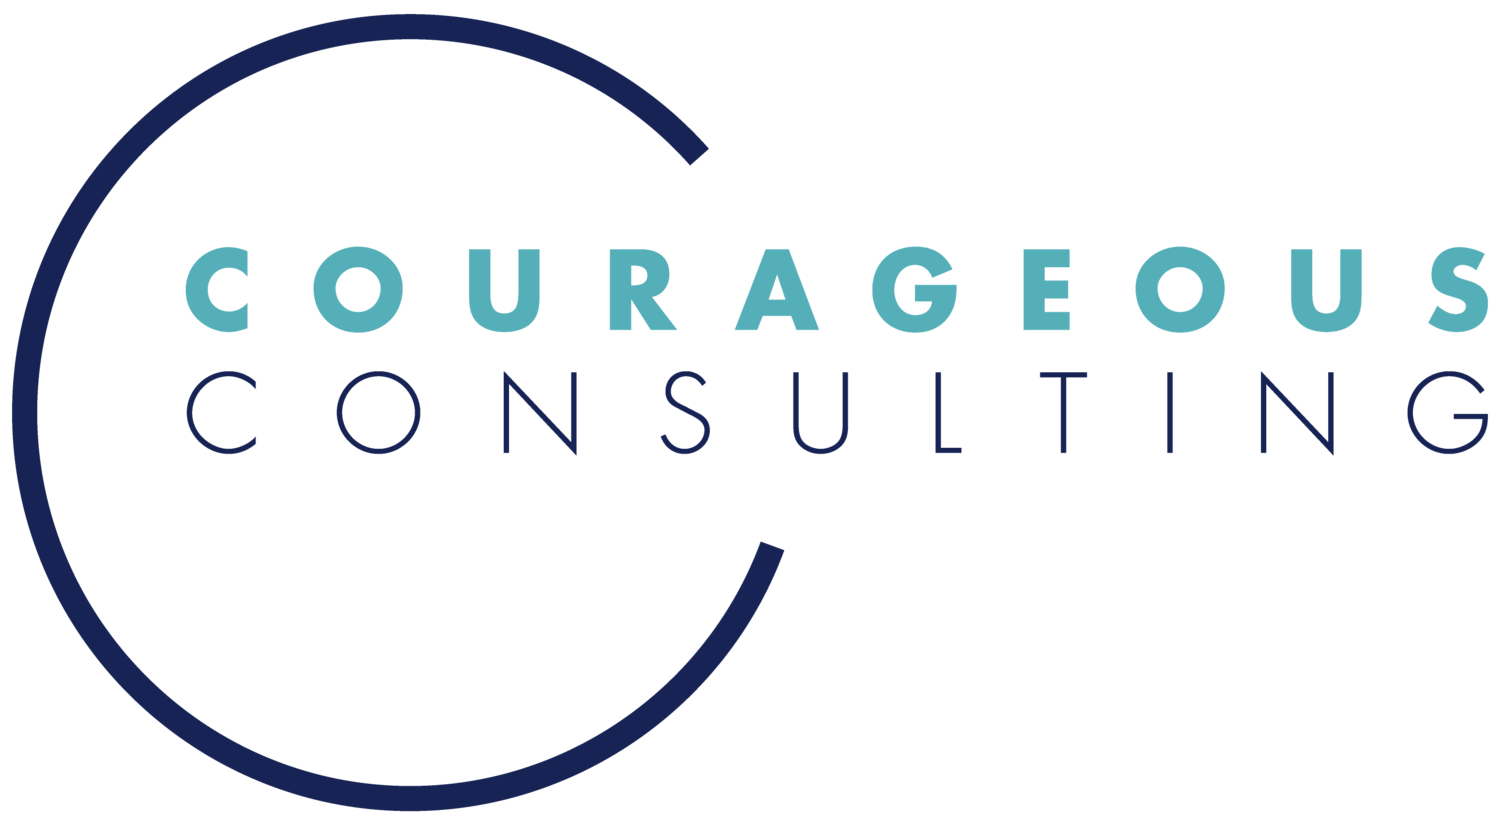 Courageous Consulting